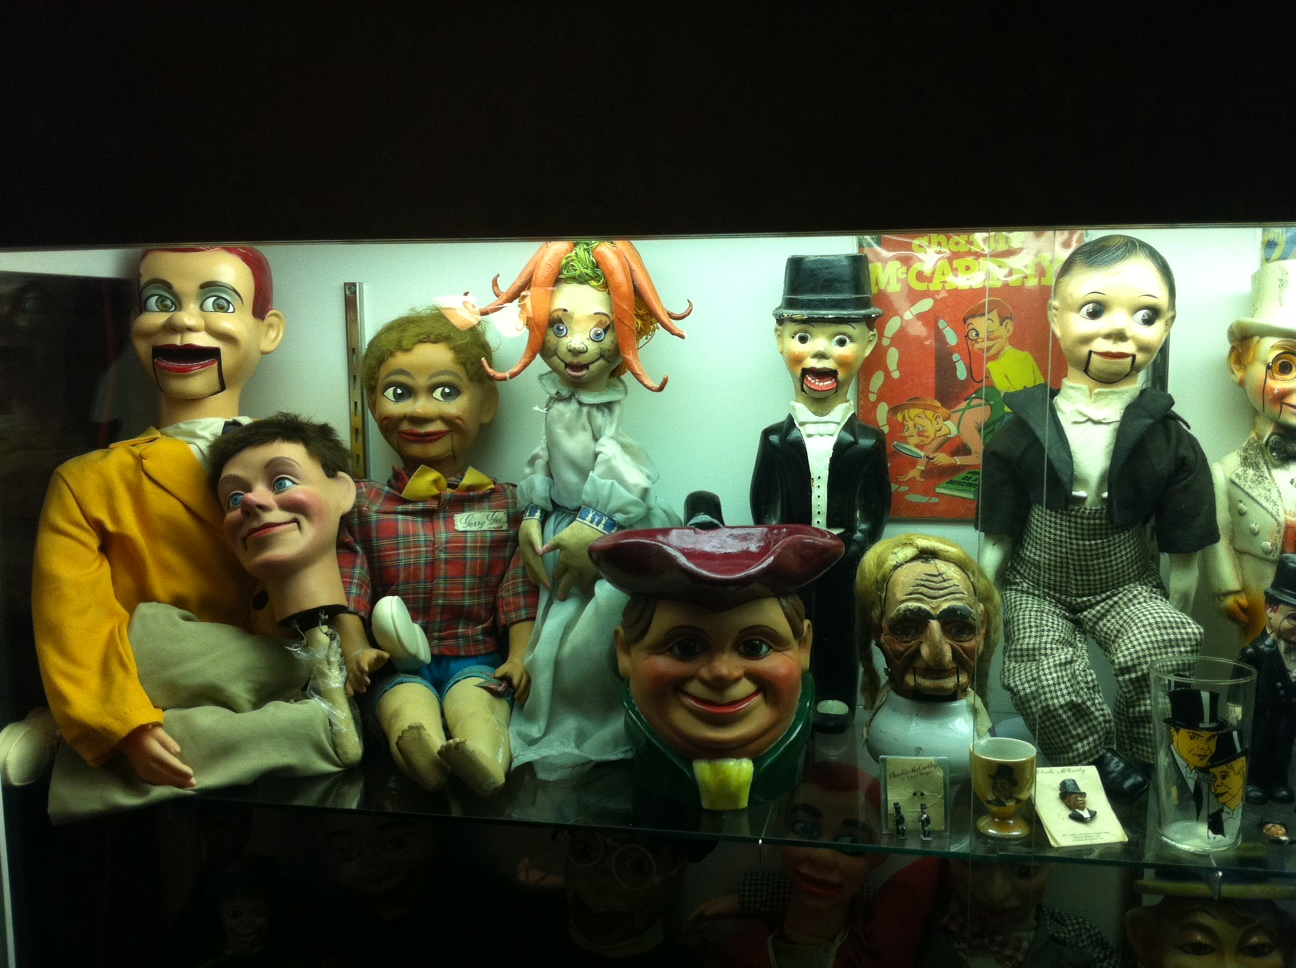 Andy Gross ventriloquism collection